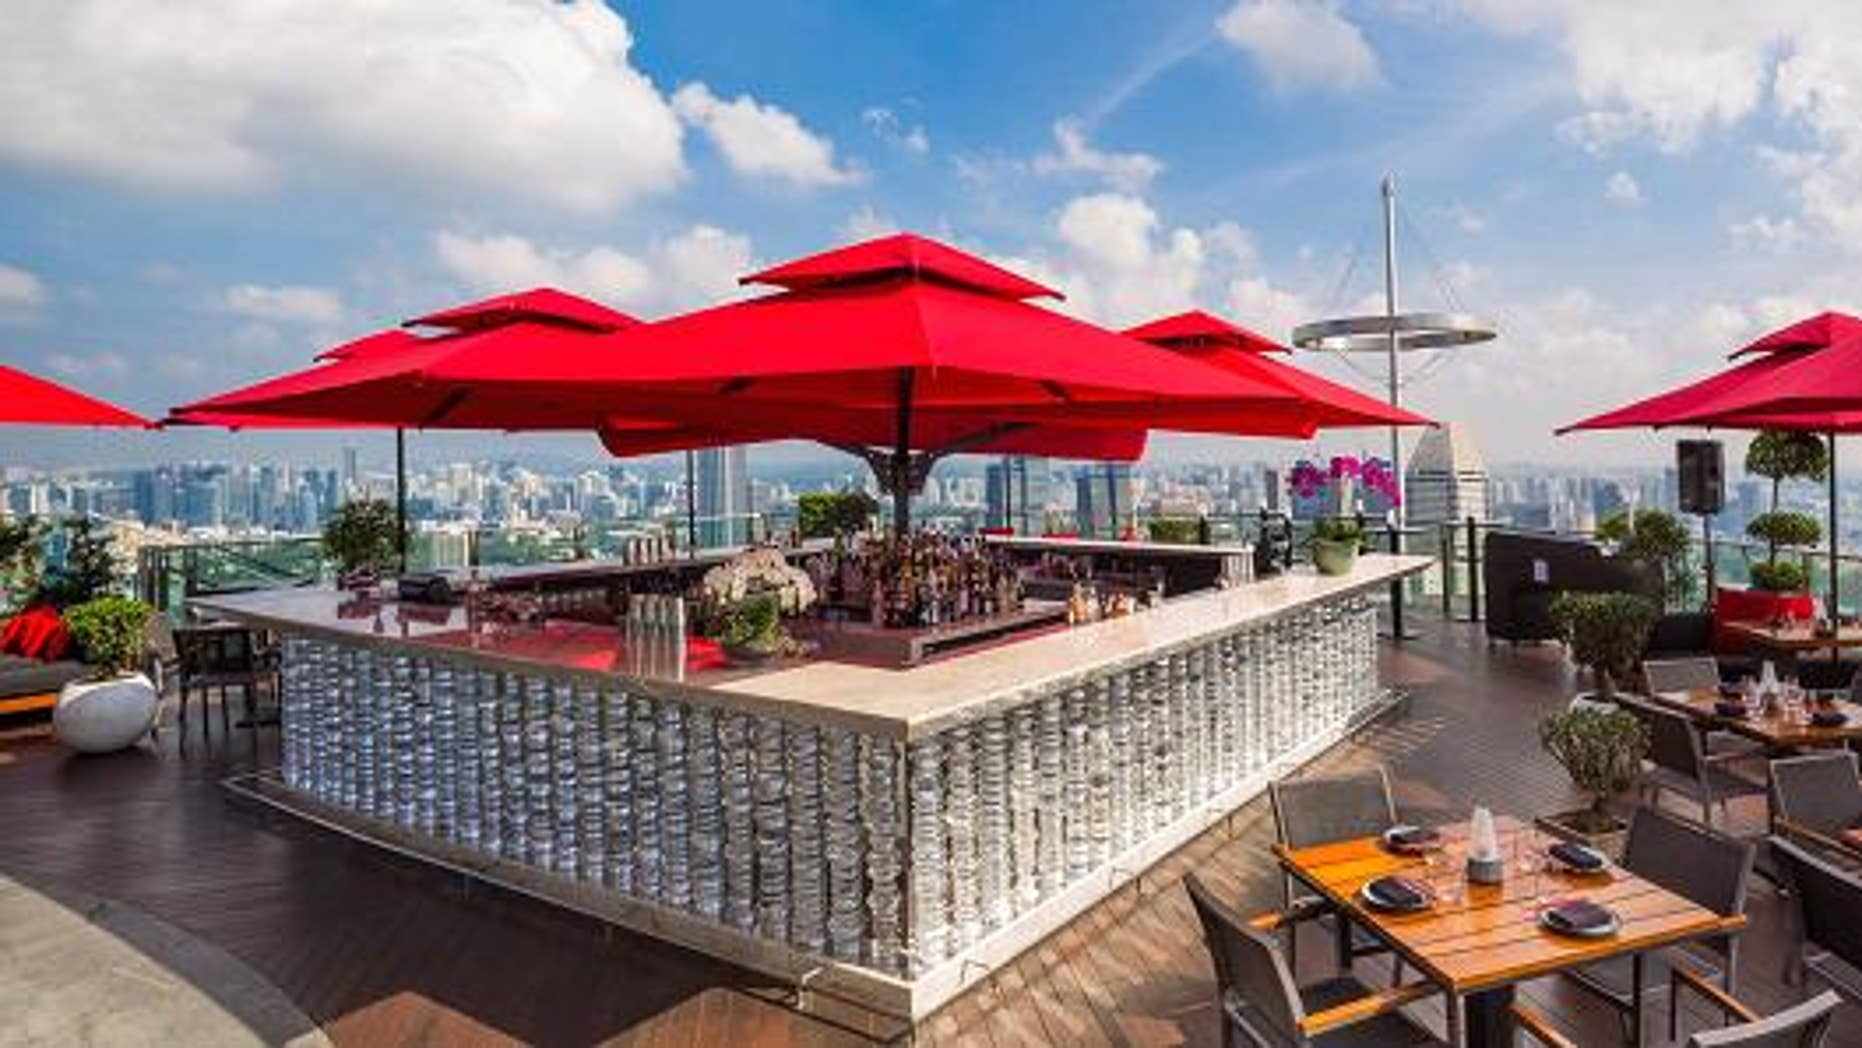 Cê La Vi Sky Bar in Singapore is offering one of the most expensive luxury meal packagers ever.